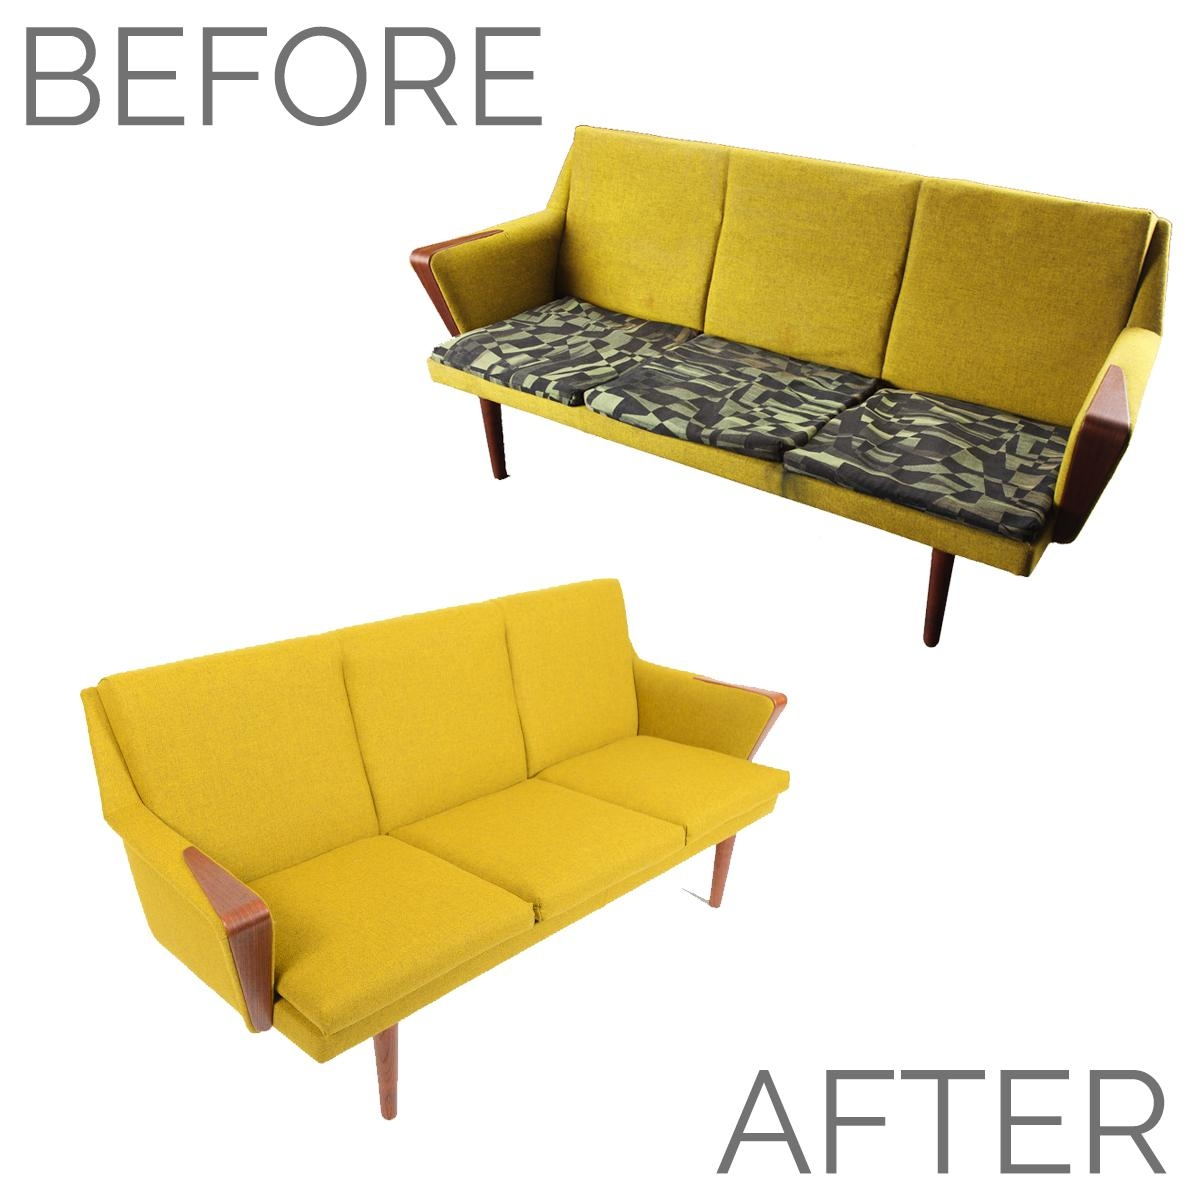 Before + After – Danish Modern Chartreuse Sofa • Mid Century Mobler With Regard To Chartreuse Sofas (View 20 of 20)